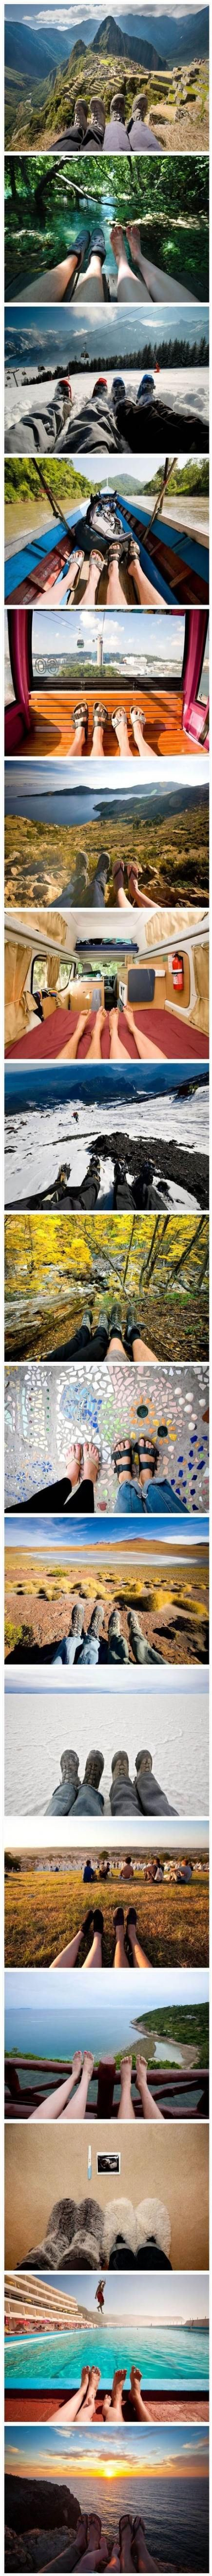 40 Ideas Travel Couple Pictures Relationship Goals Hiking #travel